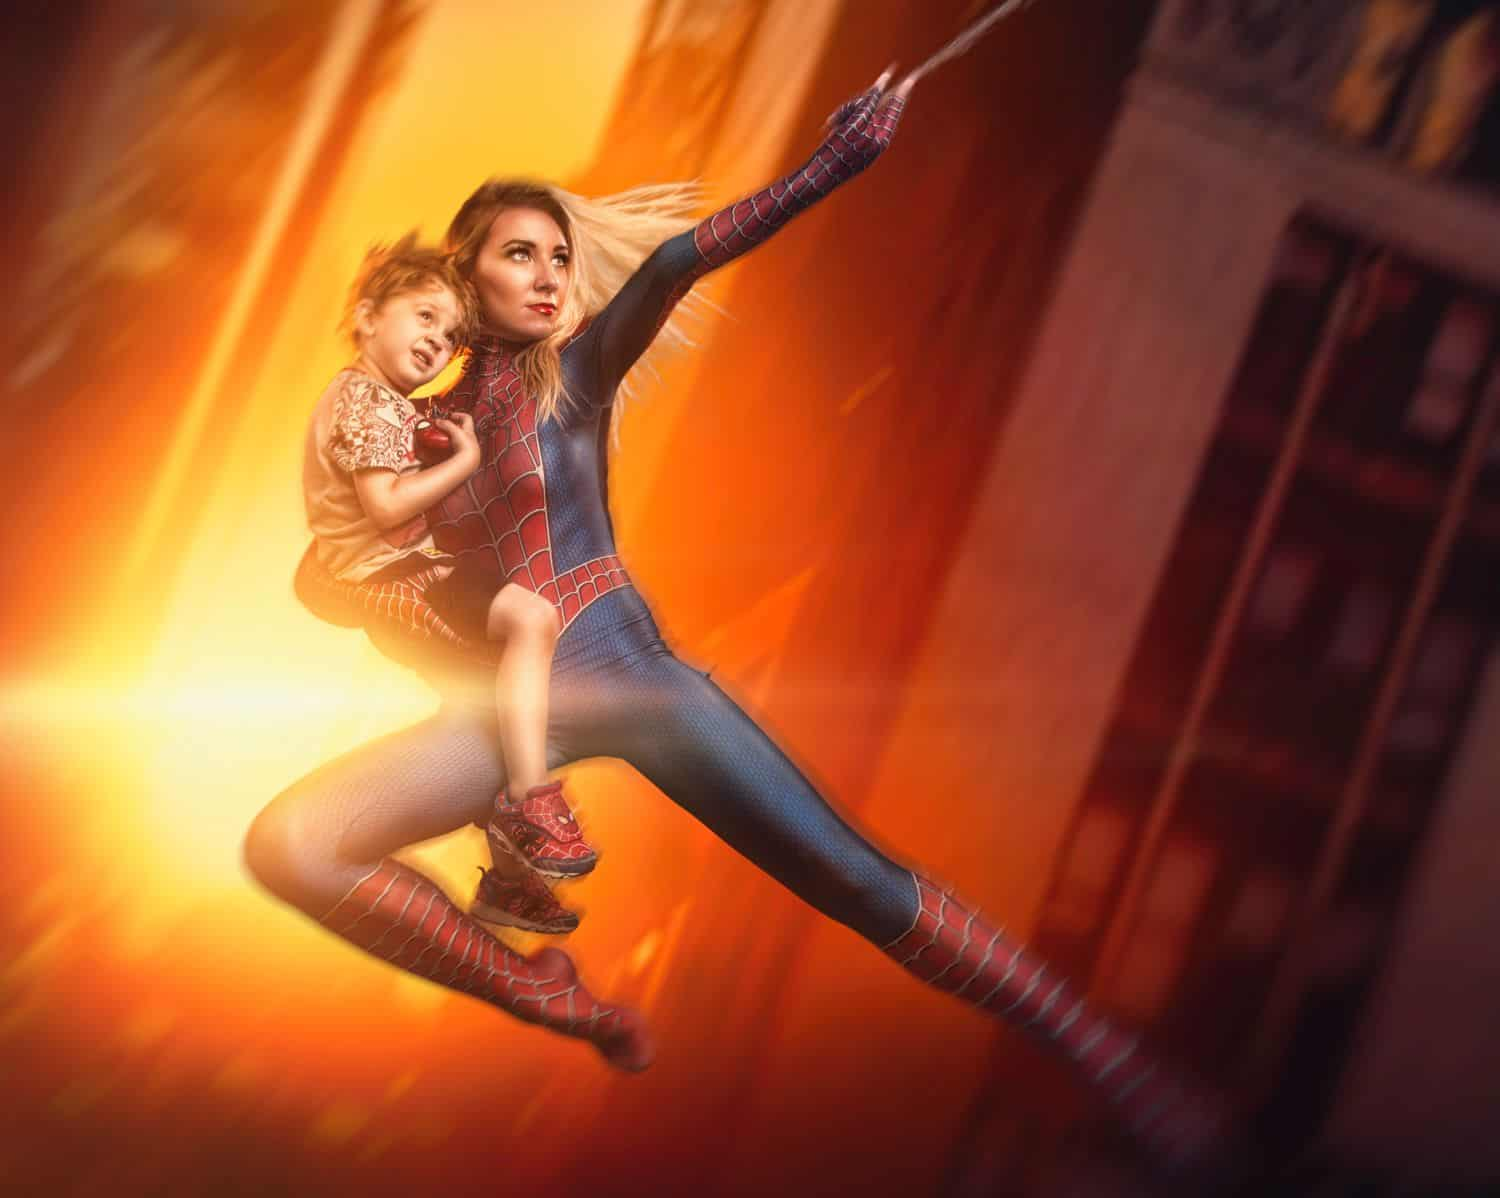 Freedom to create: Spidergirl cosplay with young child, digital art by Ryan Sims